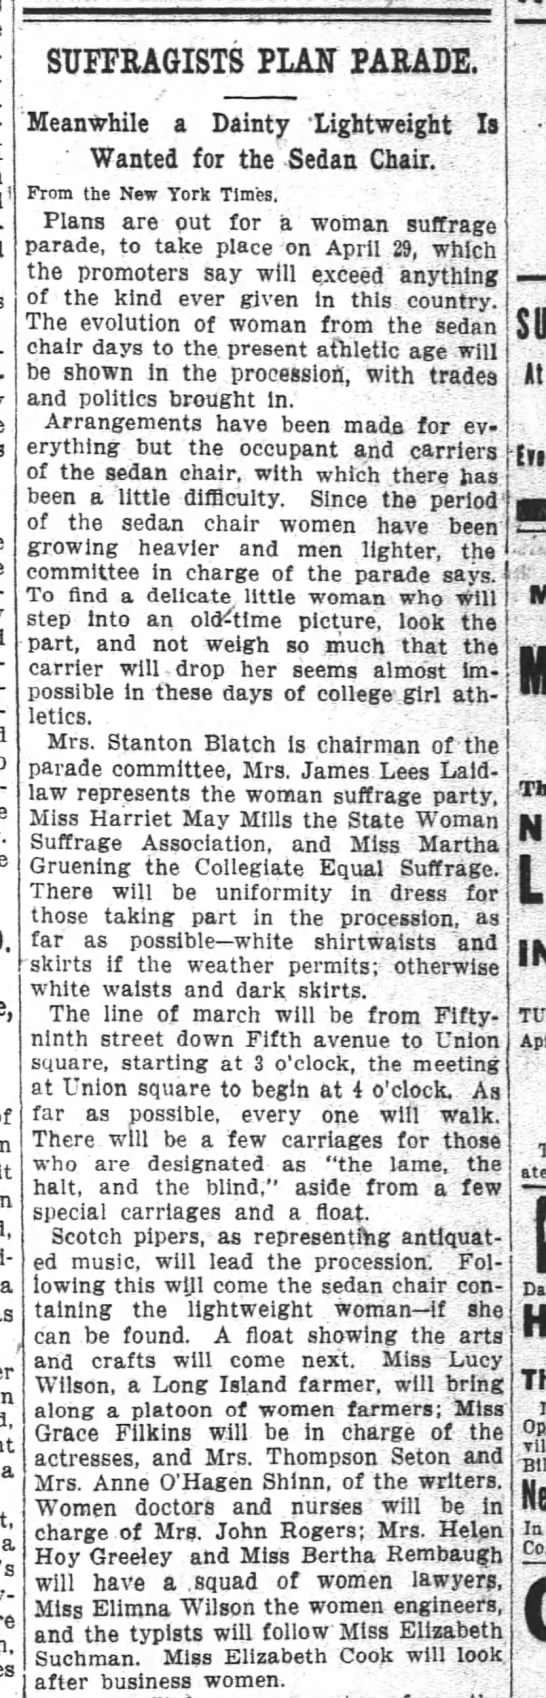 1911 03 30 the washington post p4 SUFFRAGUSTS PLAN PARADE1 - SUFFRAGISTS PLAIT PARADE a a a Meanwhile a...